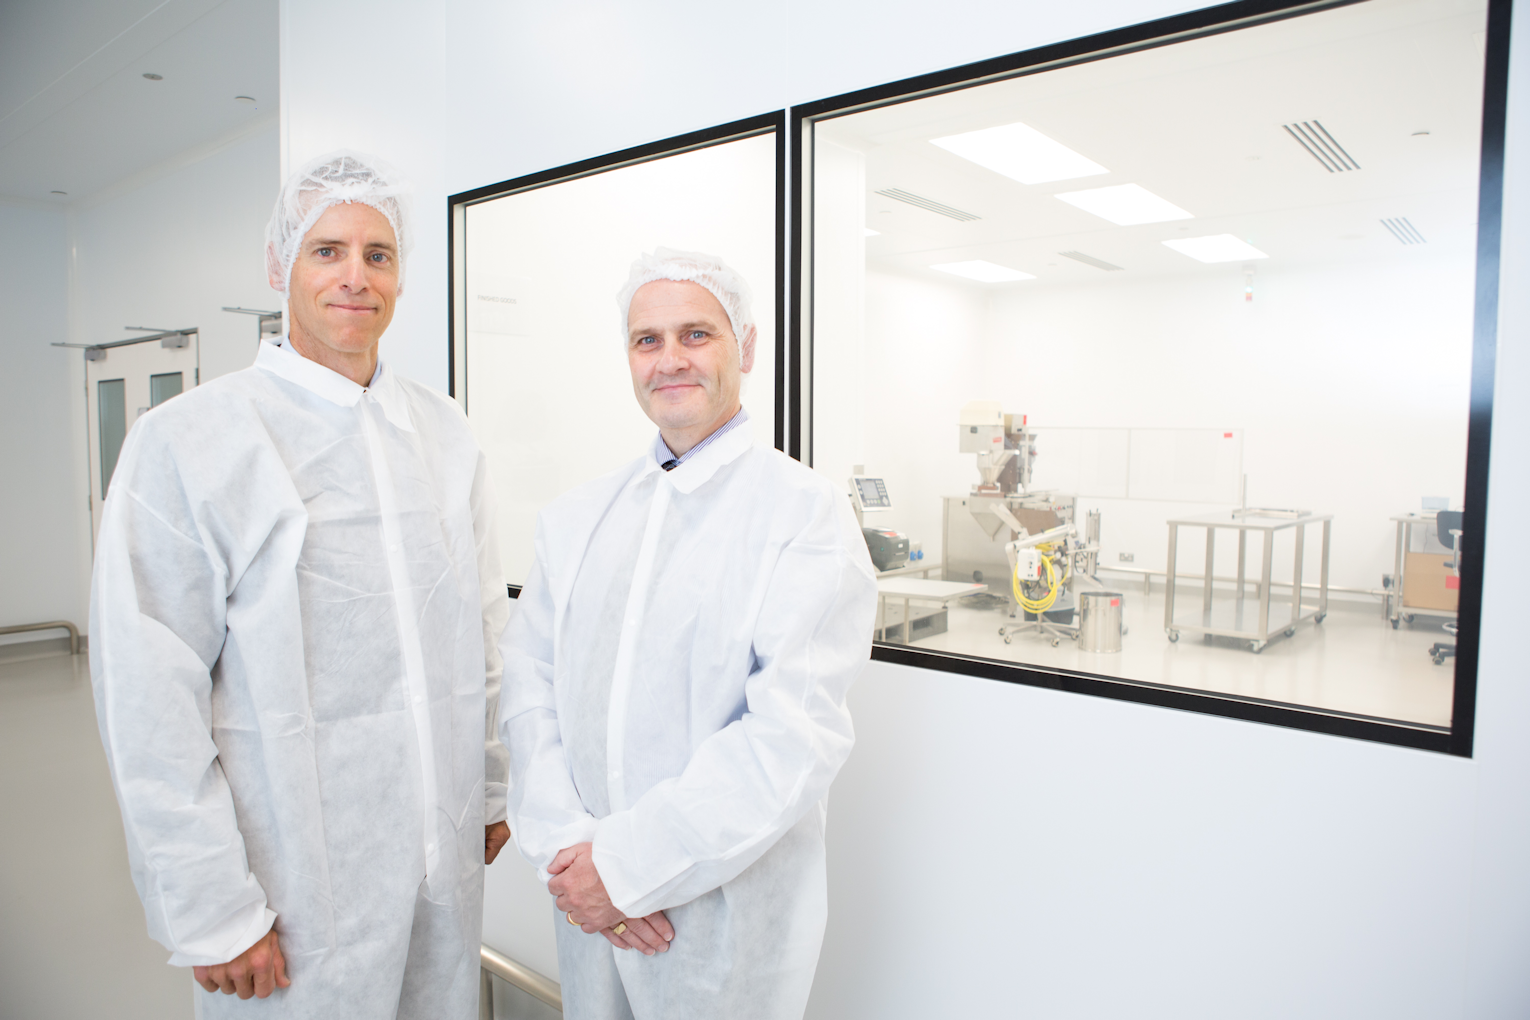 Almac Group Expands Asia Pacific Presence with New Regional Headquarters and Clinical Trial Supply Facility in Singapore